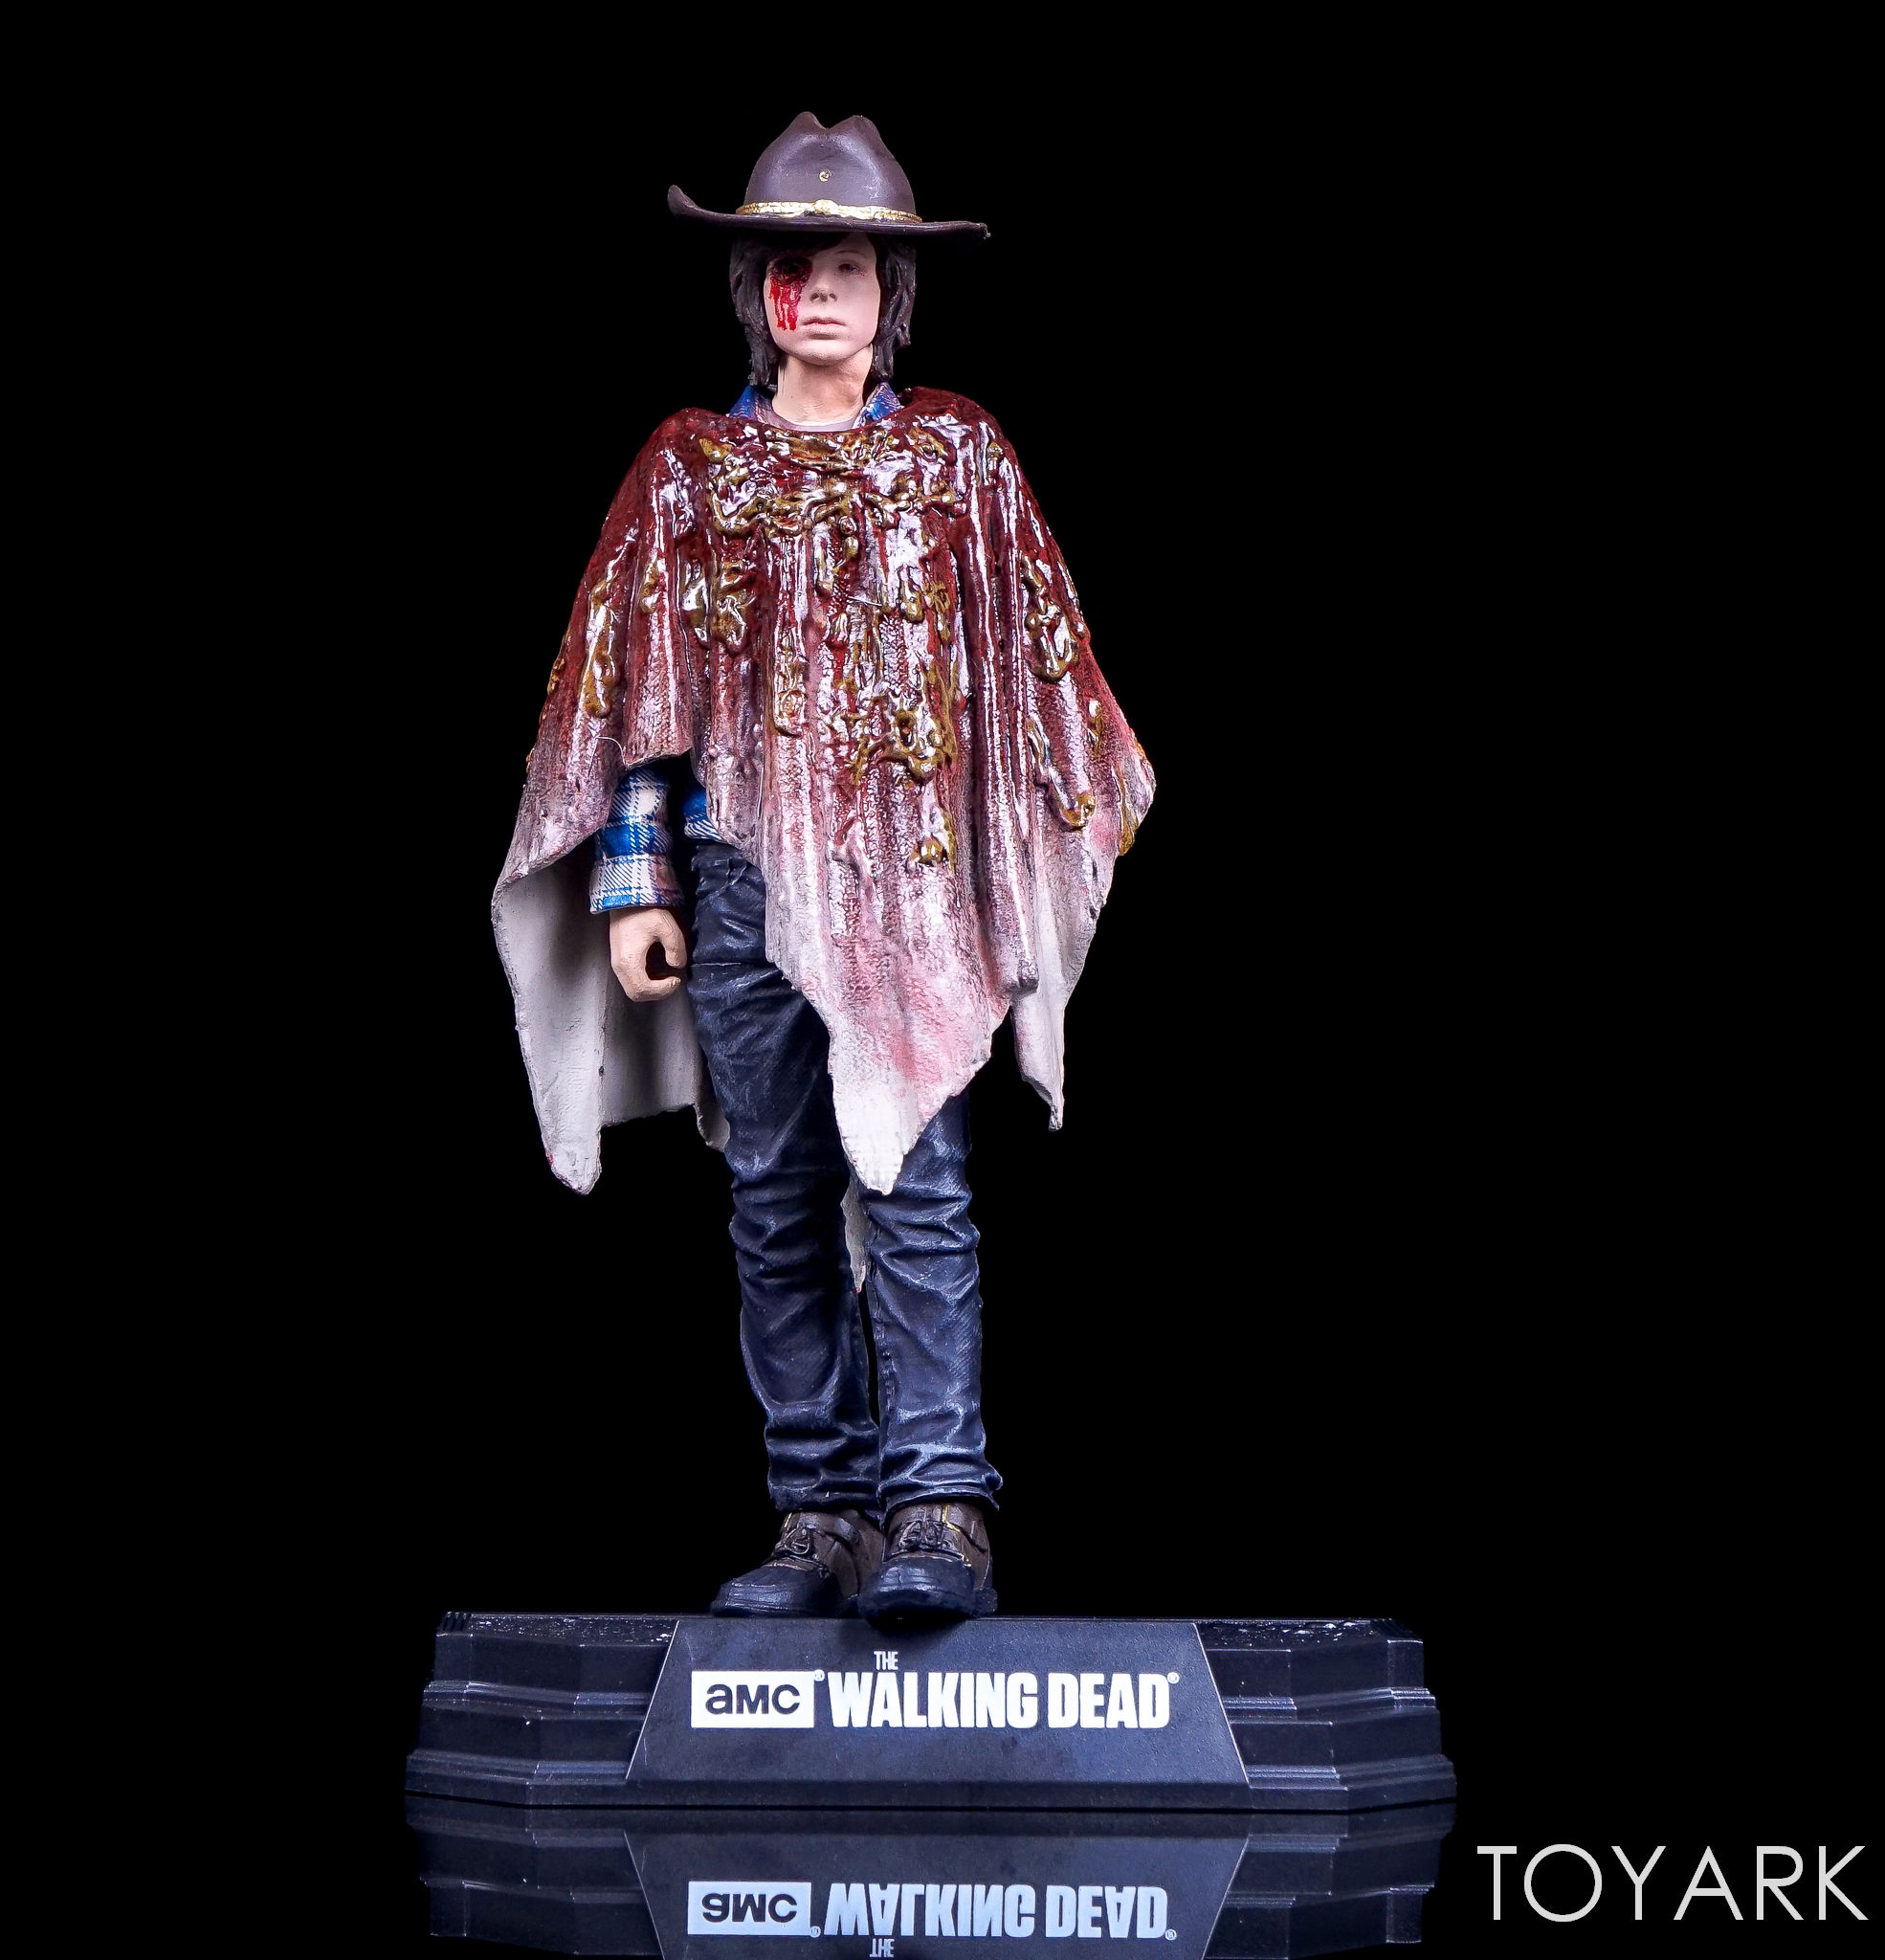 http://news.toyark.com/wp-content/uploads/sites/4/2017/03/McFarlane-Color-Tops-Walking-Dead-Carl-Grimes-017.jpg